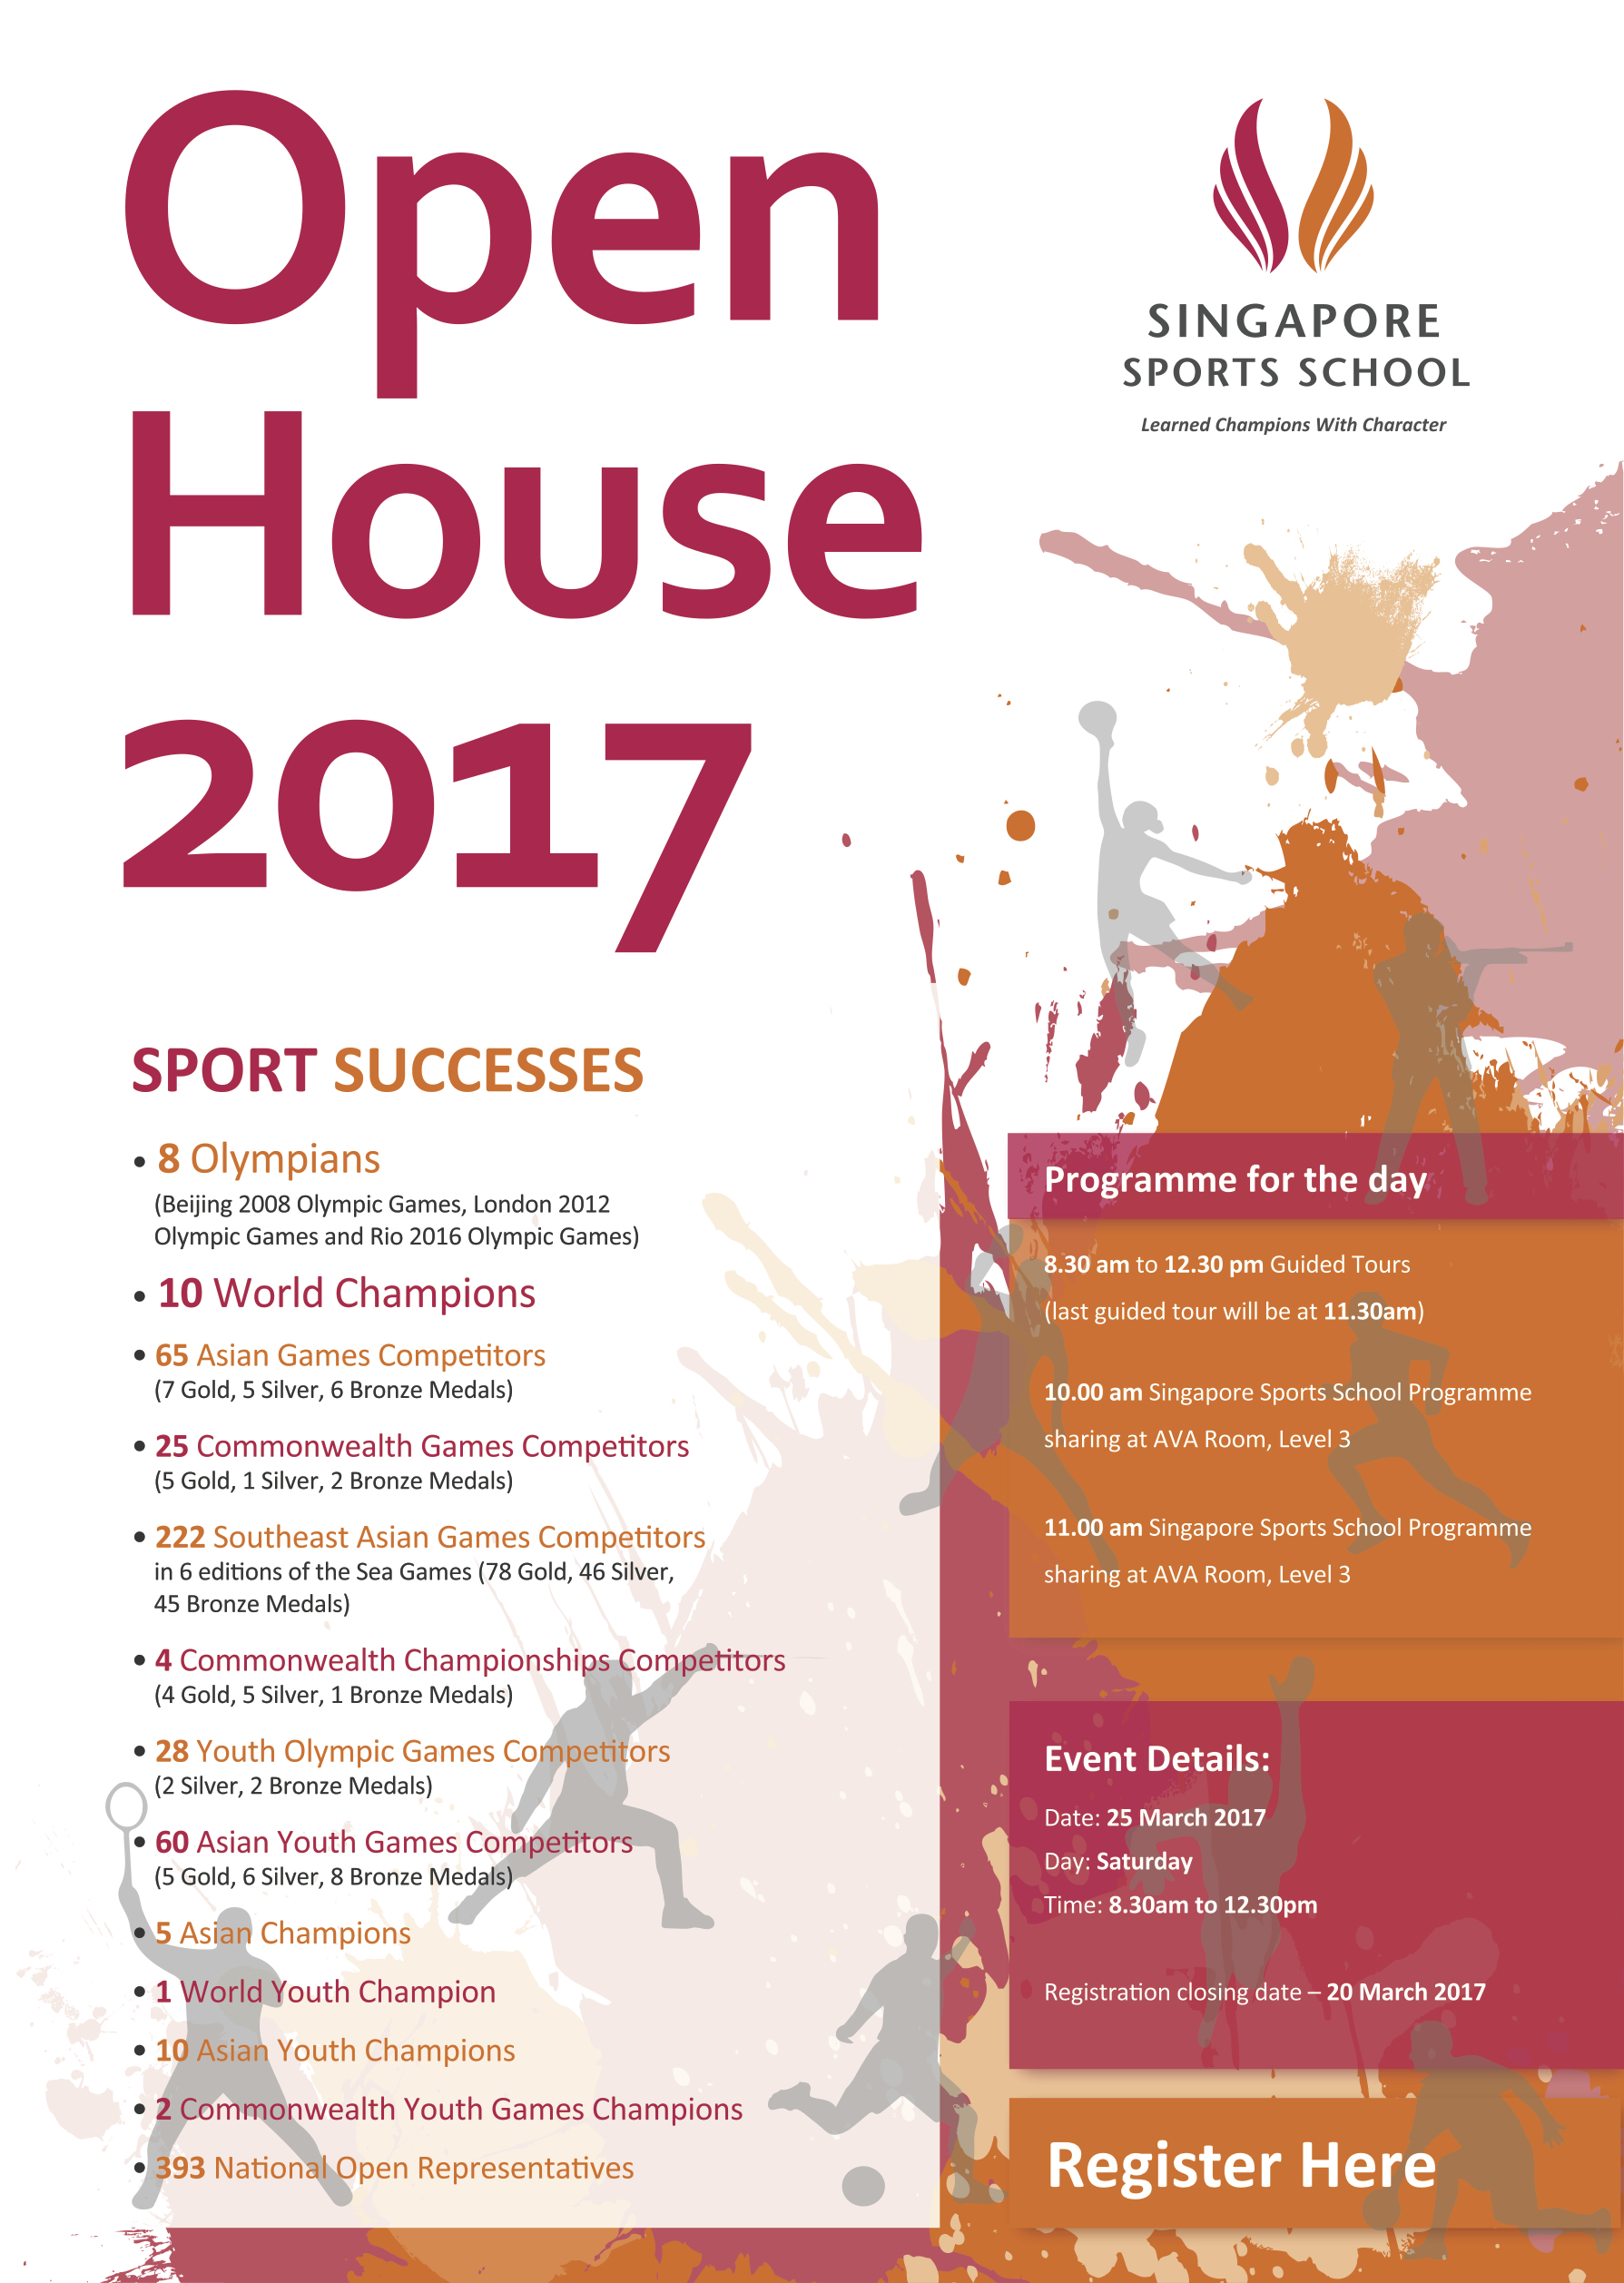 singapore sports school open house on 25 march 2017 | singapore